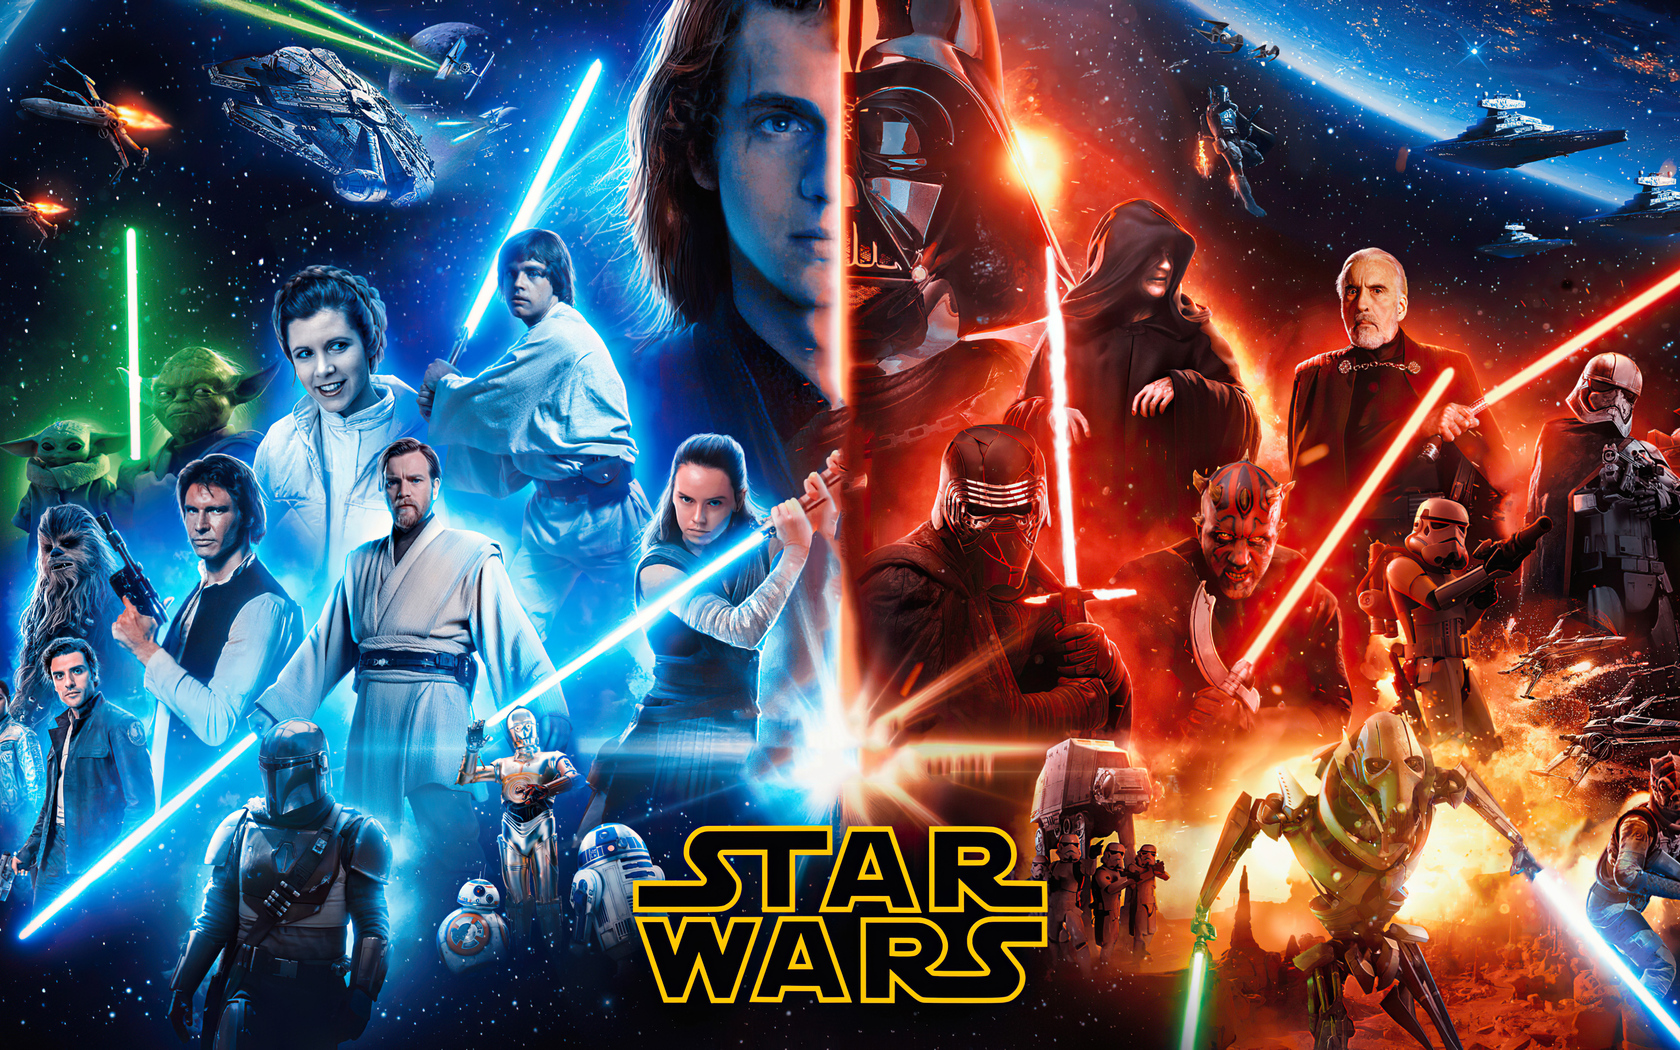 1680x1050 Star Wars 4th May 1680x1050 Resolution Hd 4k Wallpapers Images Backgrounds Photos And Pictures